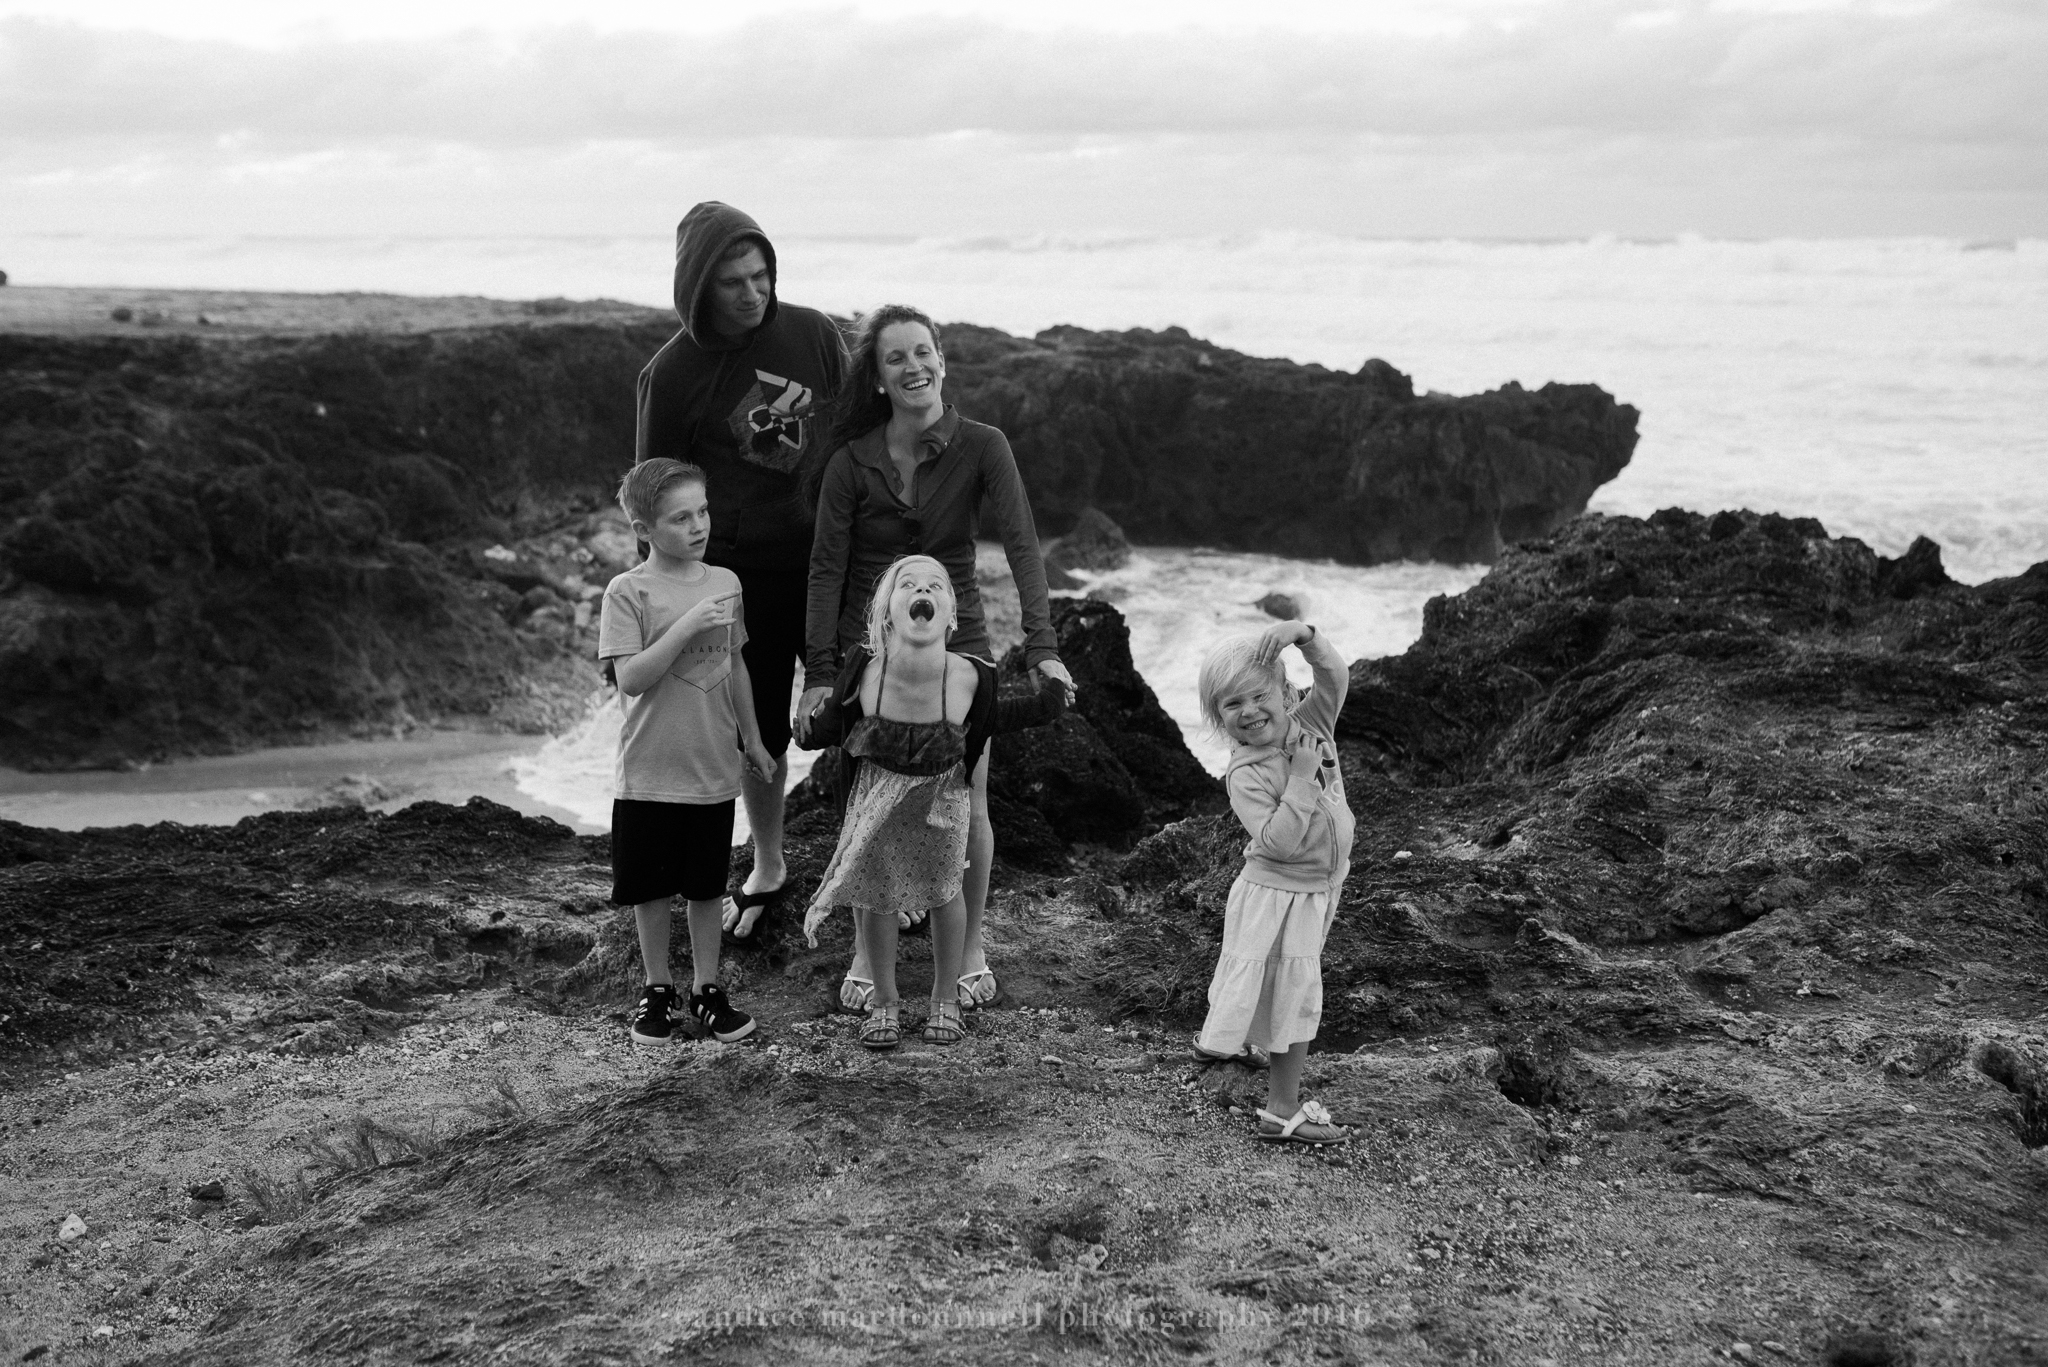 best family photograph at kaena point beach lifestyle photography by candice macdonnell photography, oahu hawaii documentary photographer